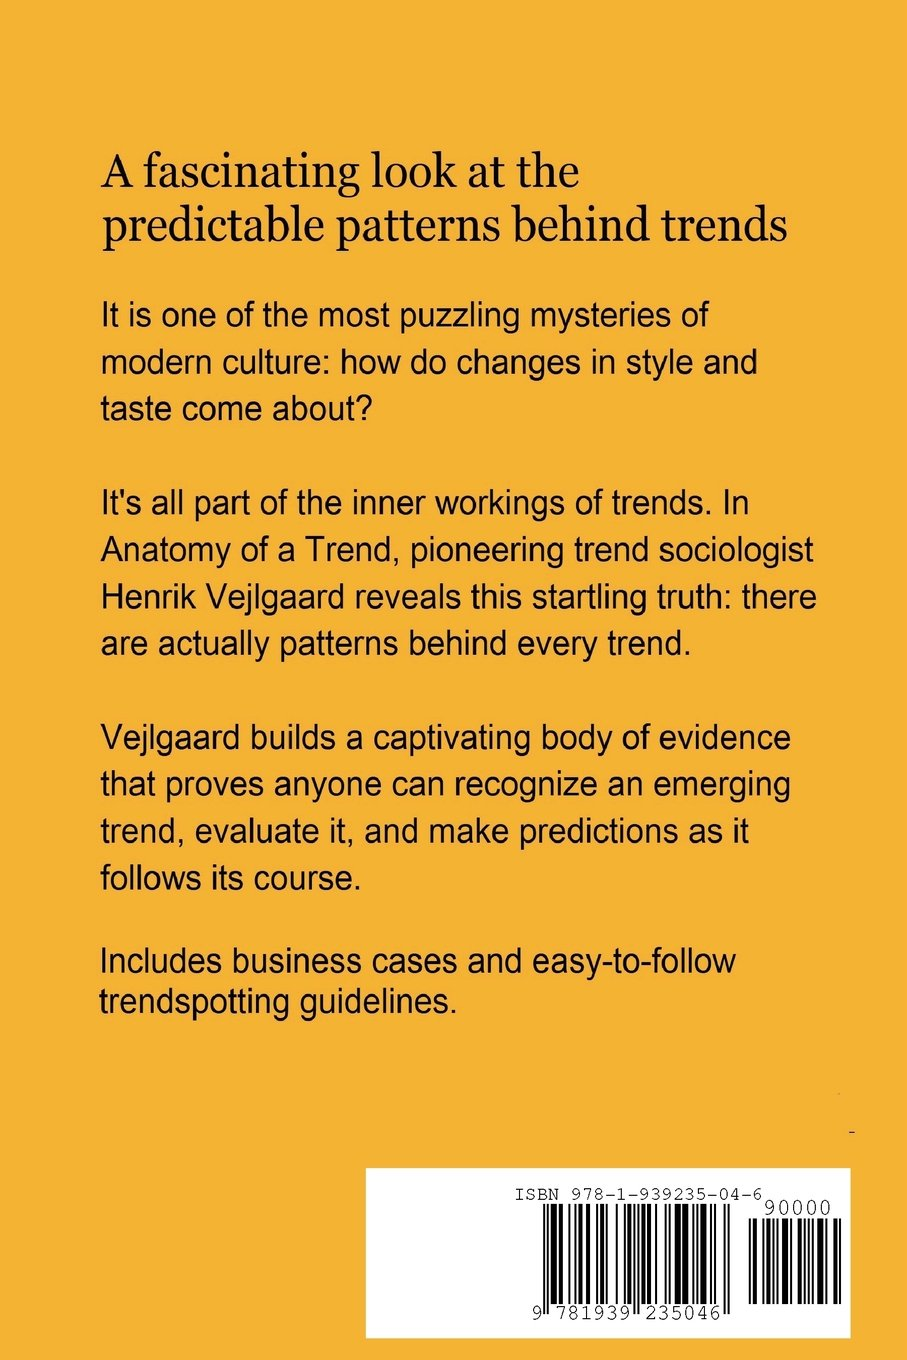 Anatomy of a Trend: Henrik Vejlgaard: 9781939235046: Amazon.com: Books